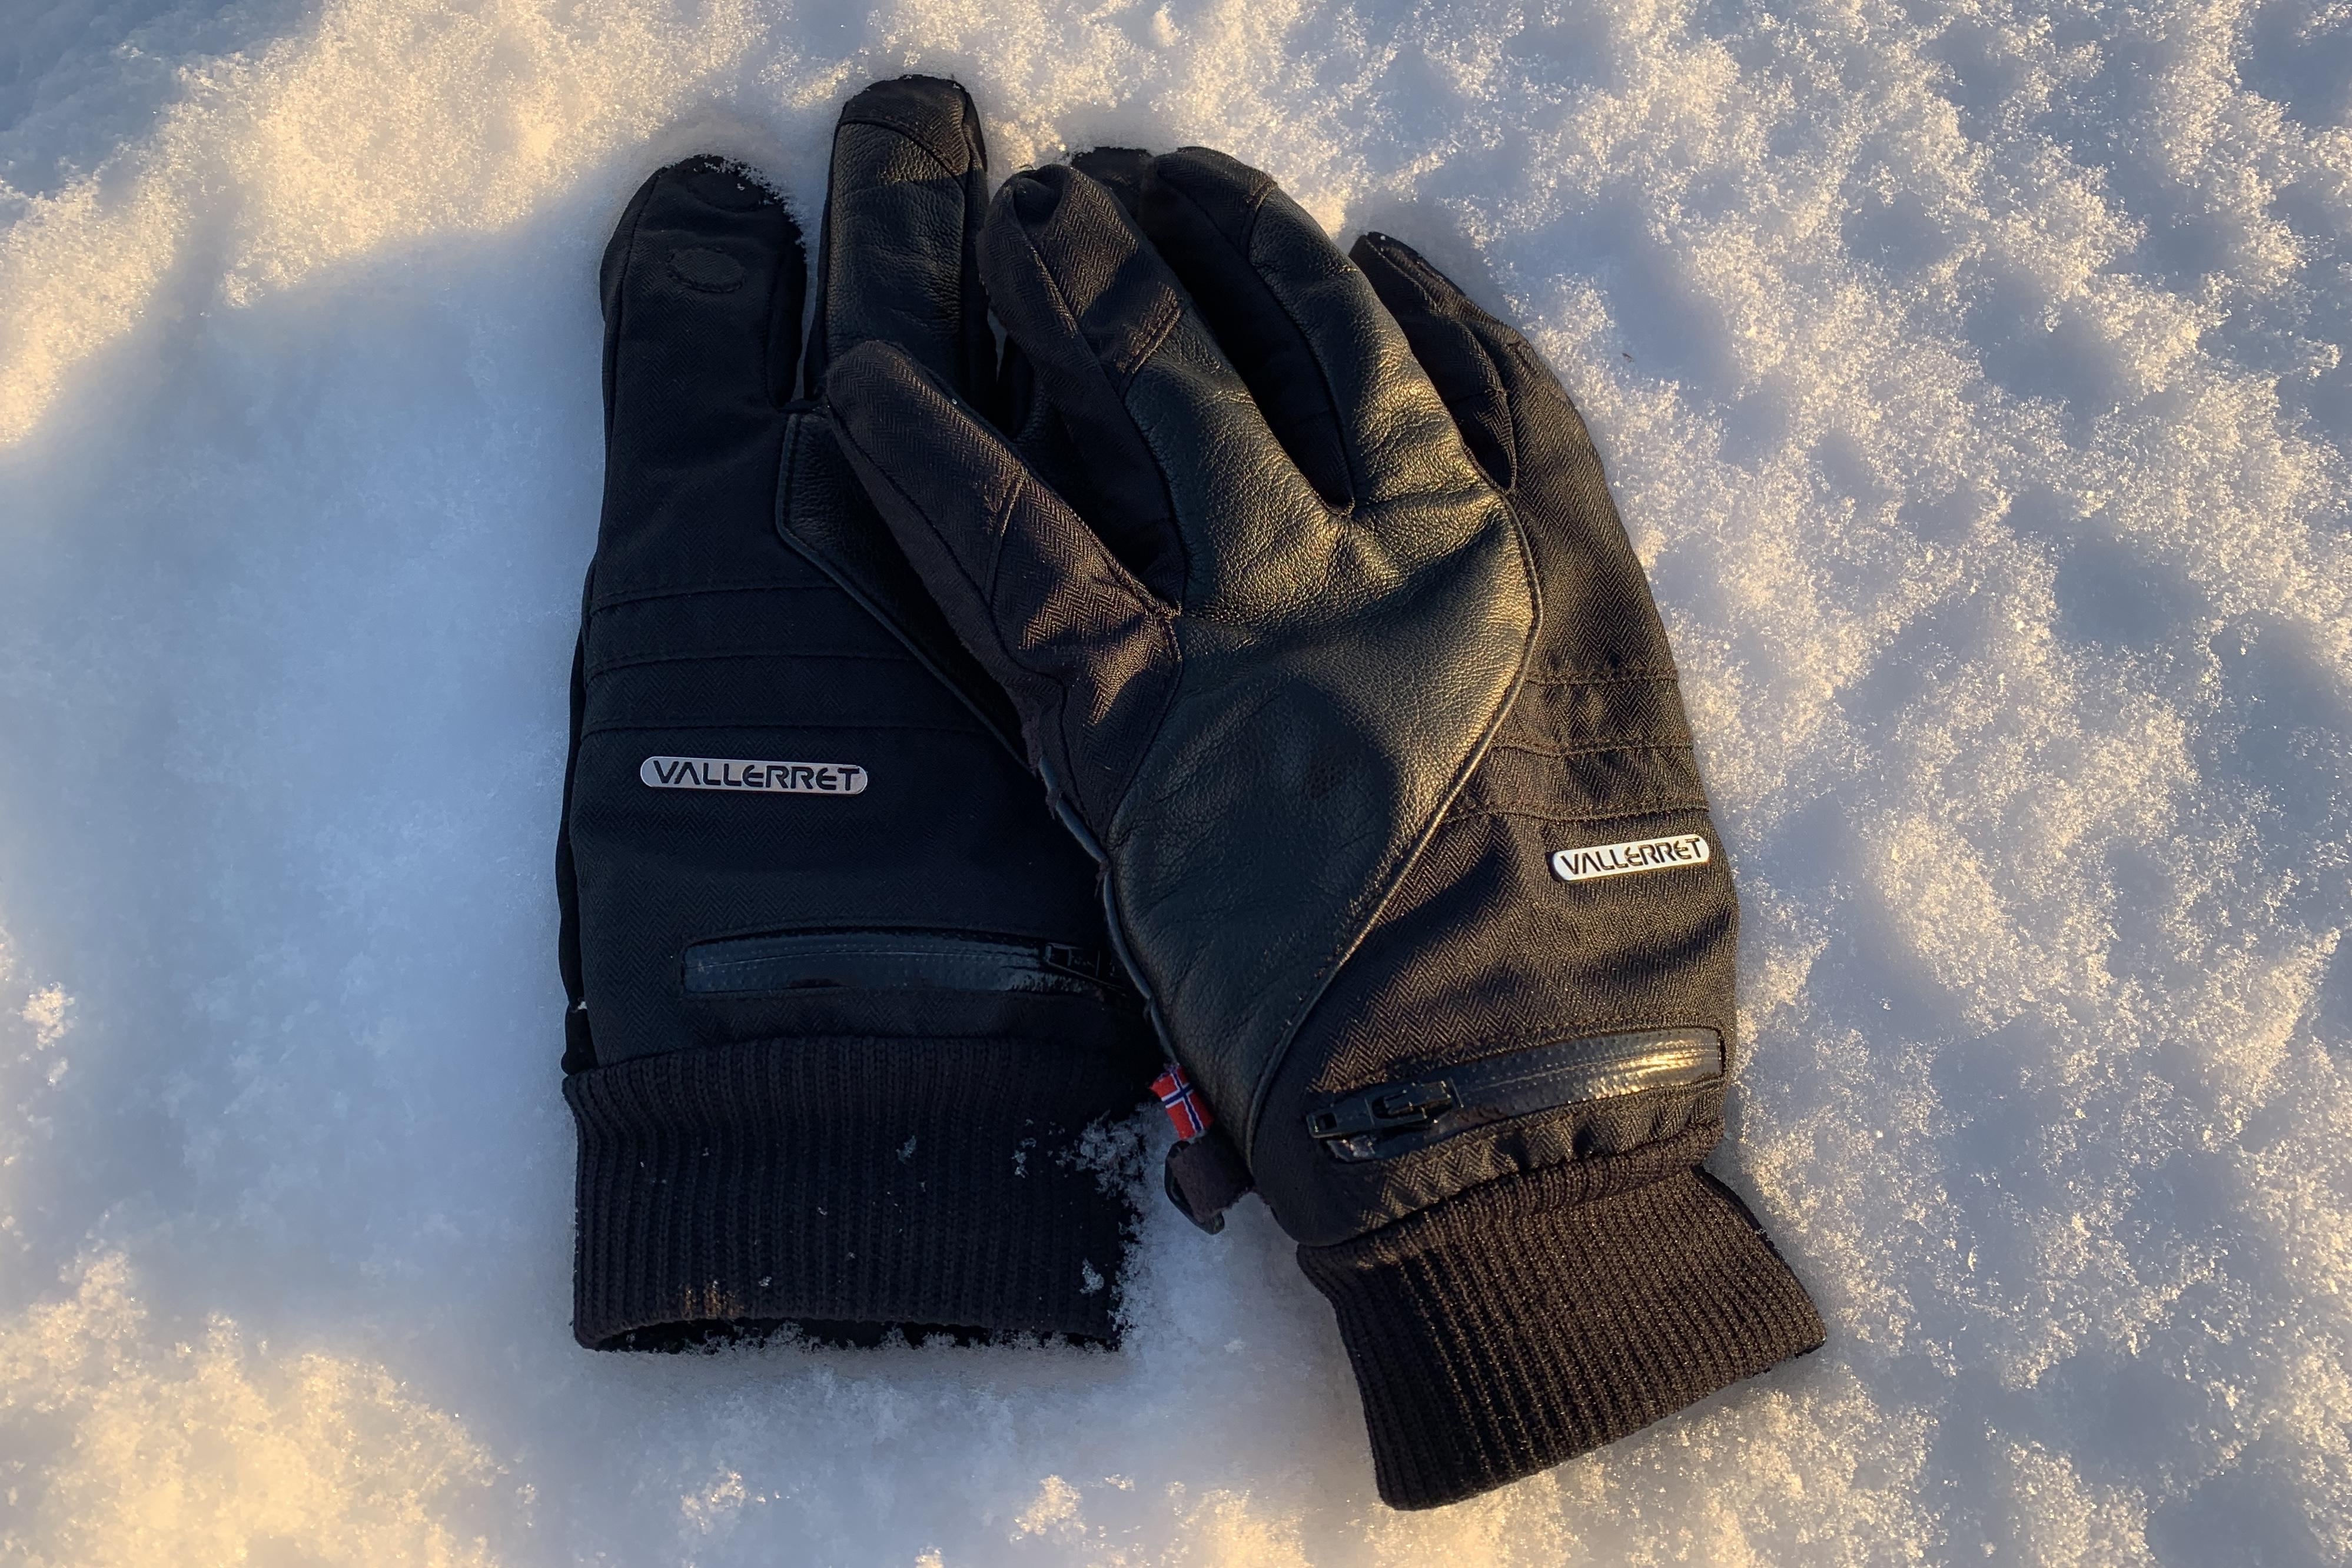 vallerret photography gloves, photoraphy gloves,